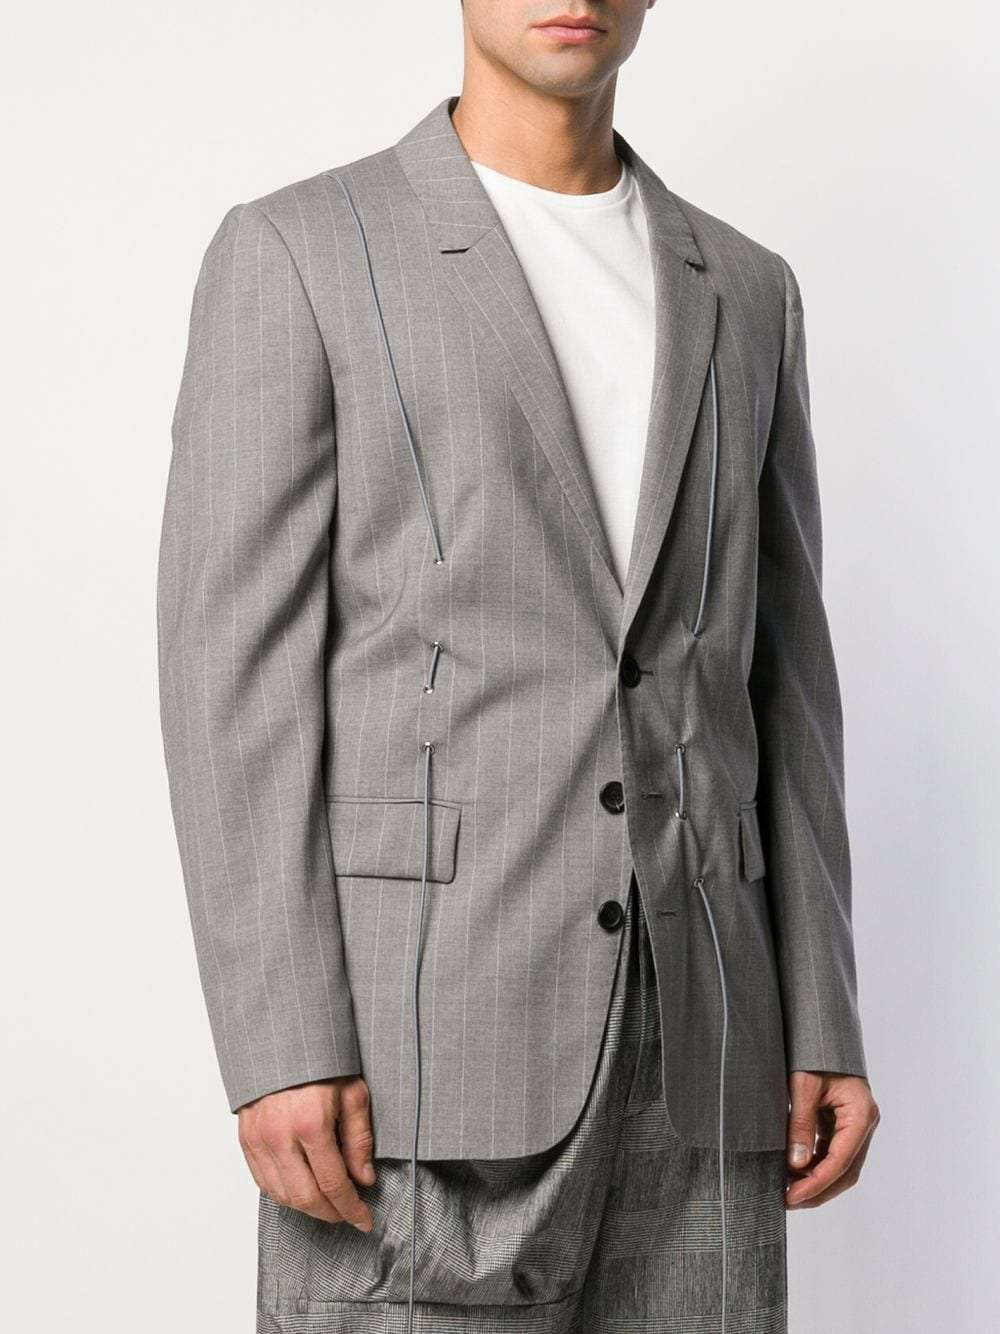 Chalayan Suit that Villanelle wore in series 3